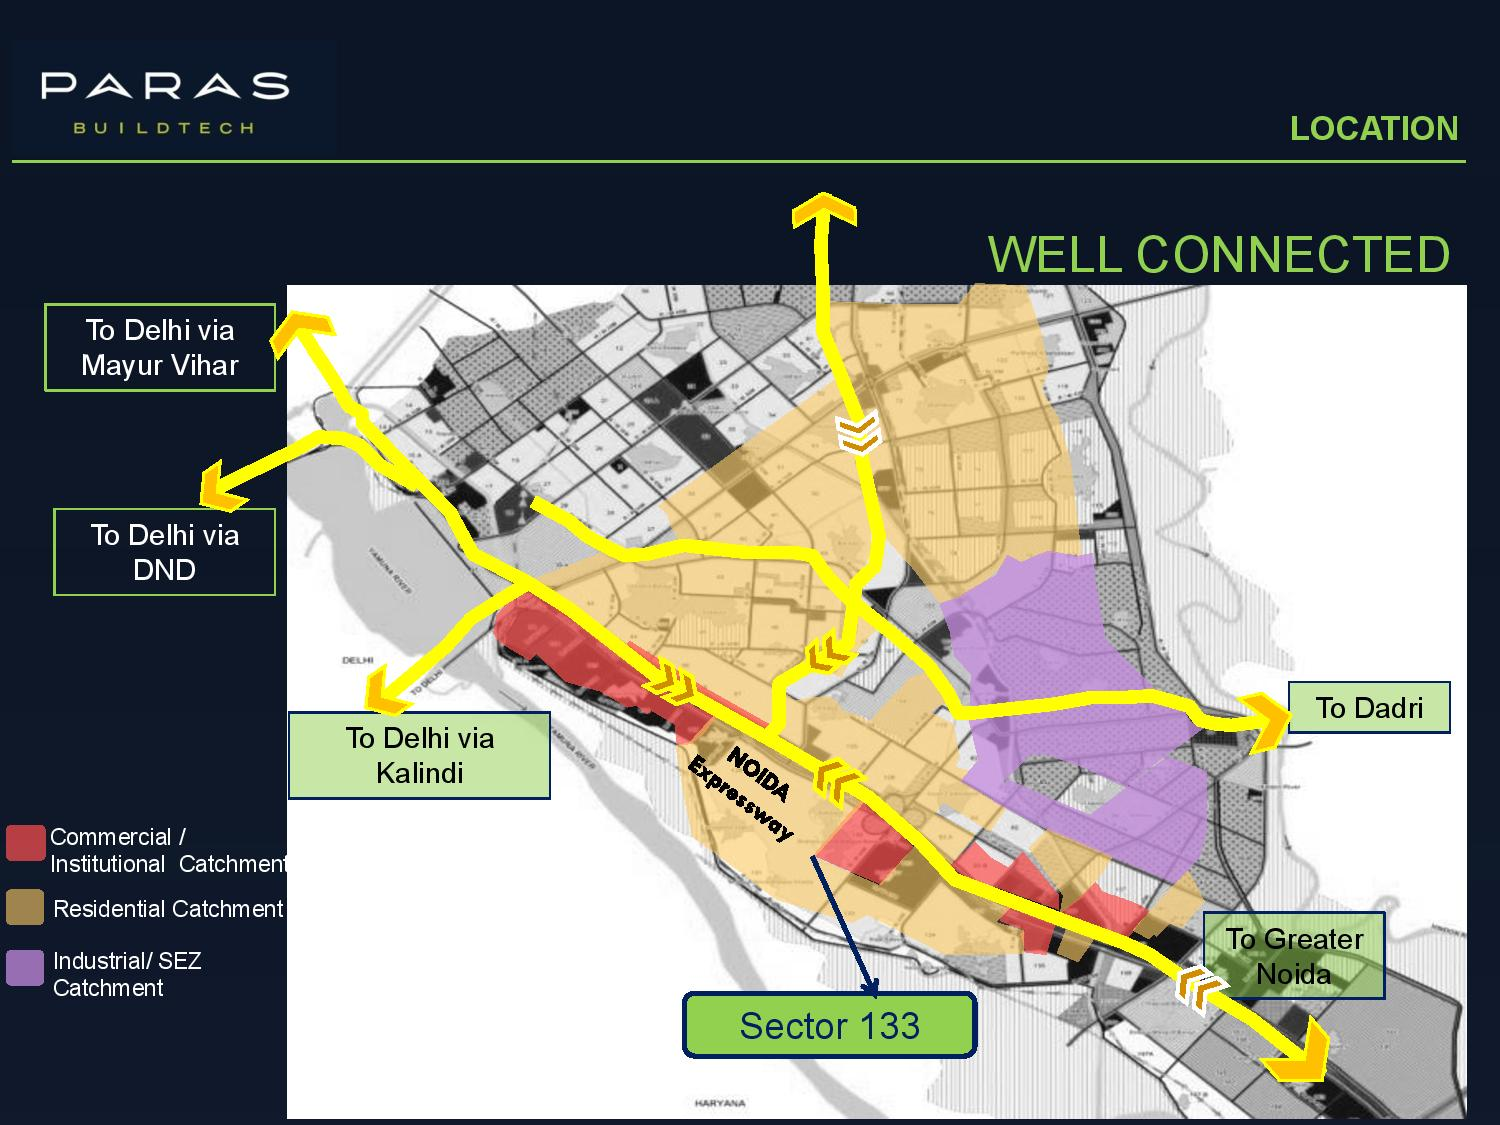 Location Map of Paras Commercial with Connectivity